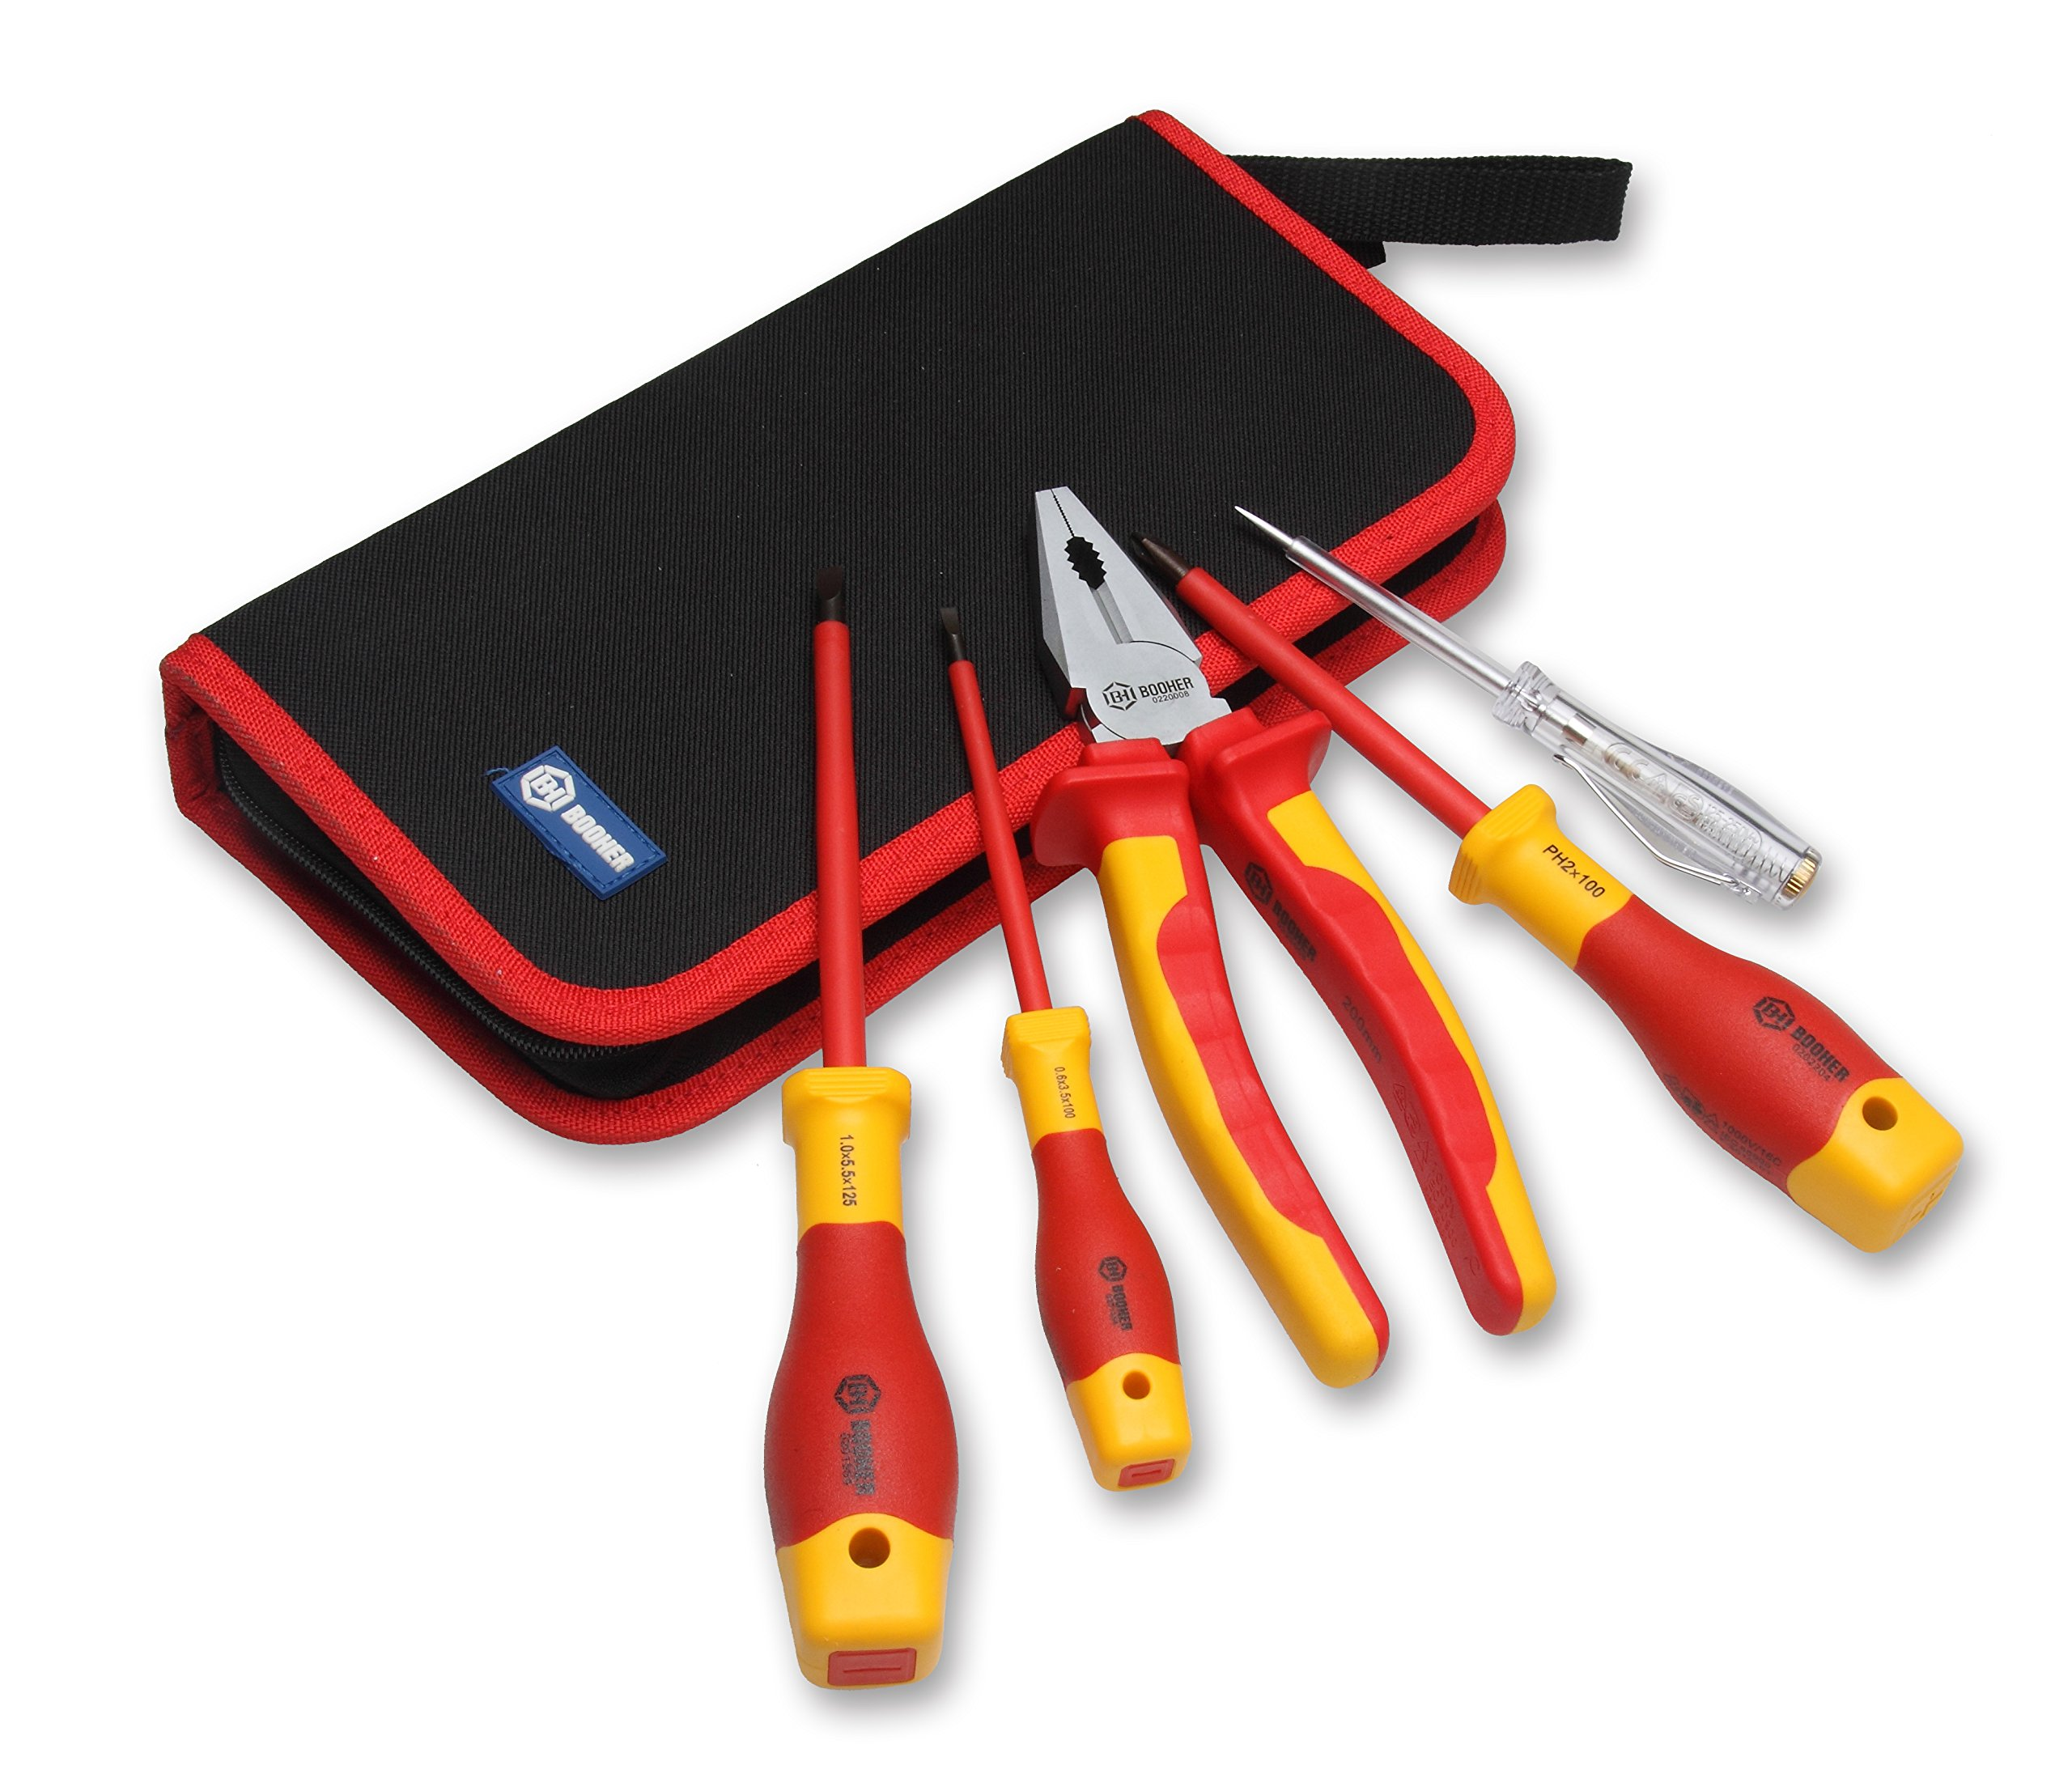 BOOHER 0200201 5-Piece 1000V Insulated Tools Set